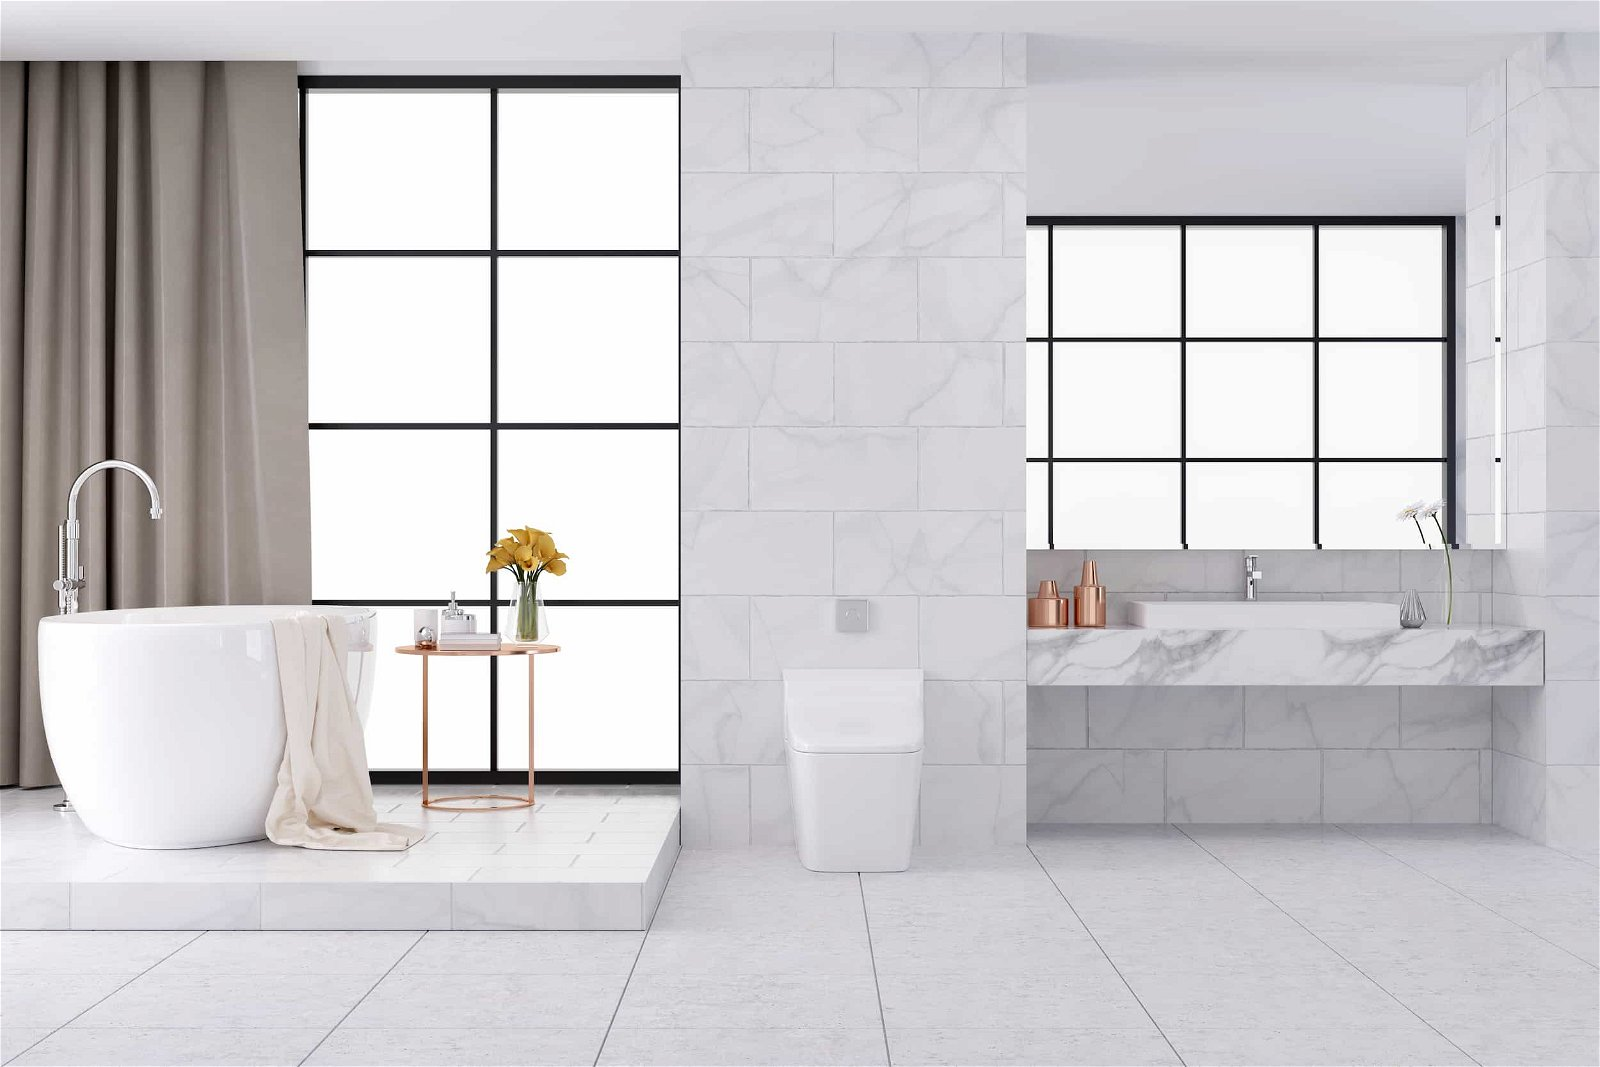 Luxurious Bathrooms with Design Details